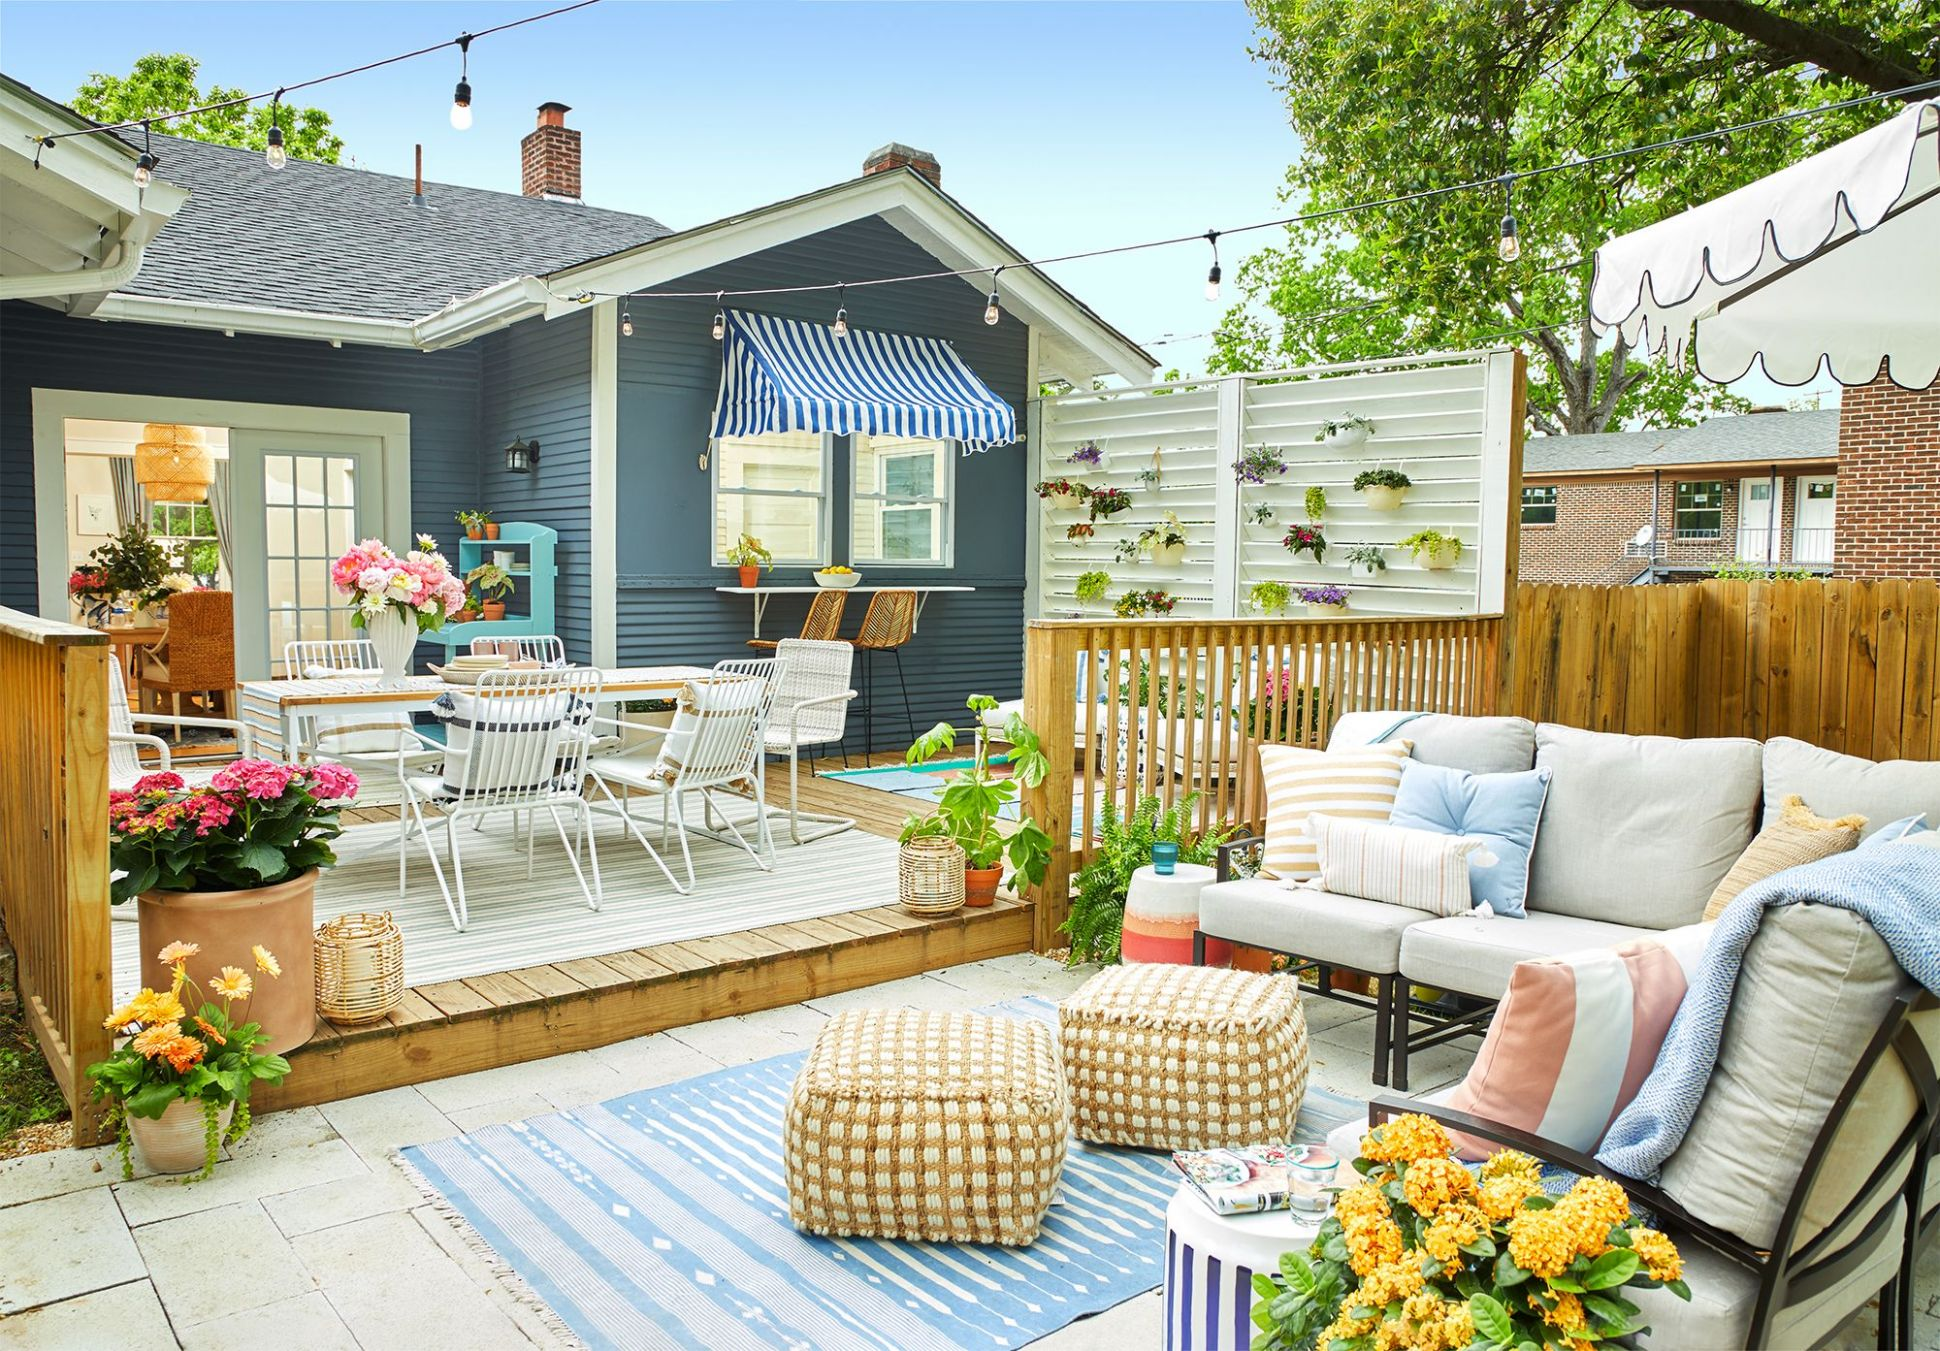 8 Small Backyard Ideas - Small Backyard Landscaping and Patio Designs